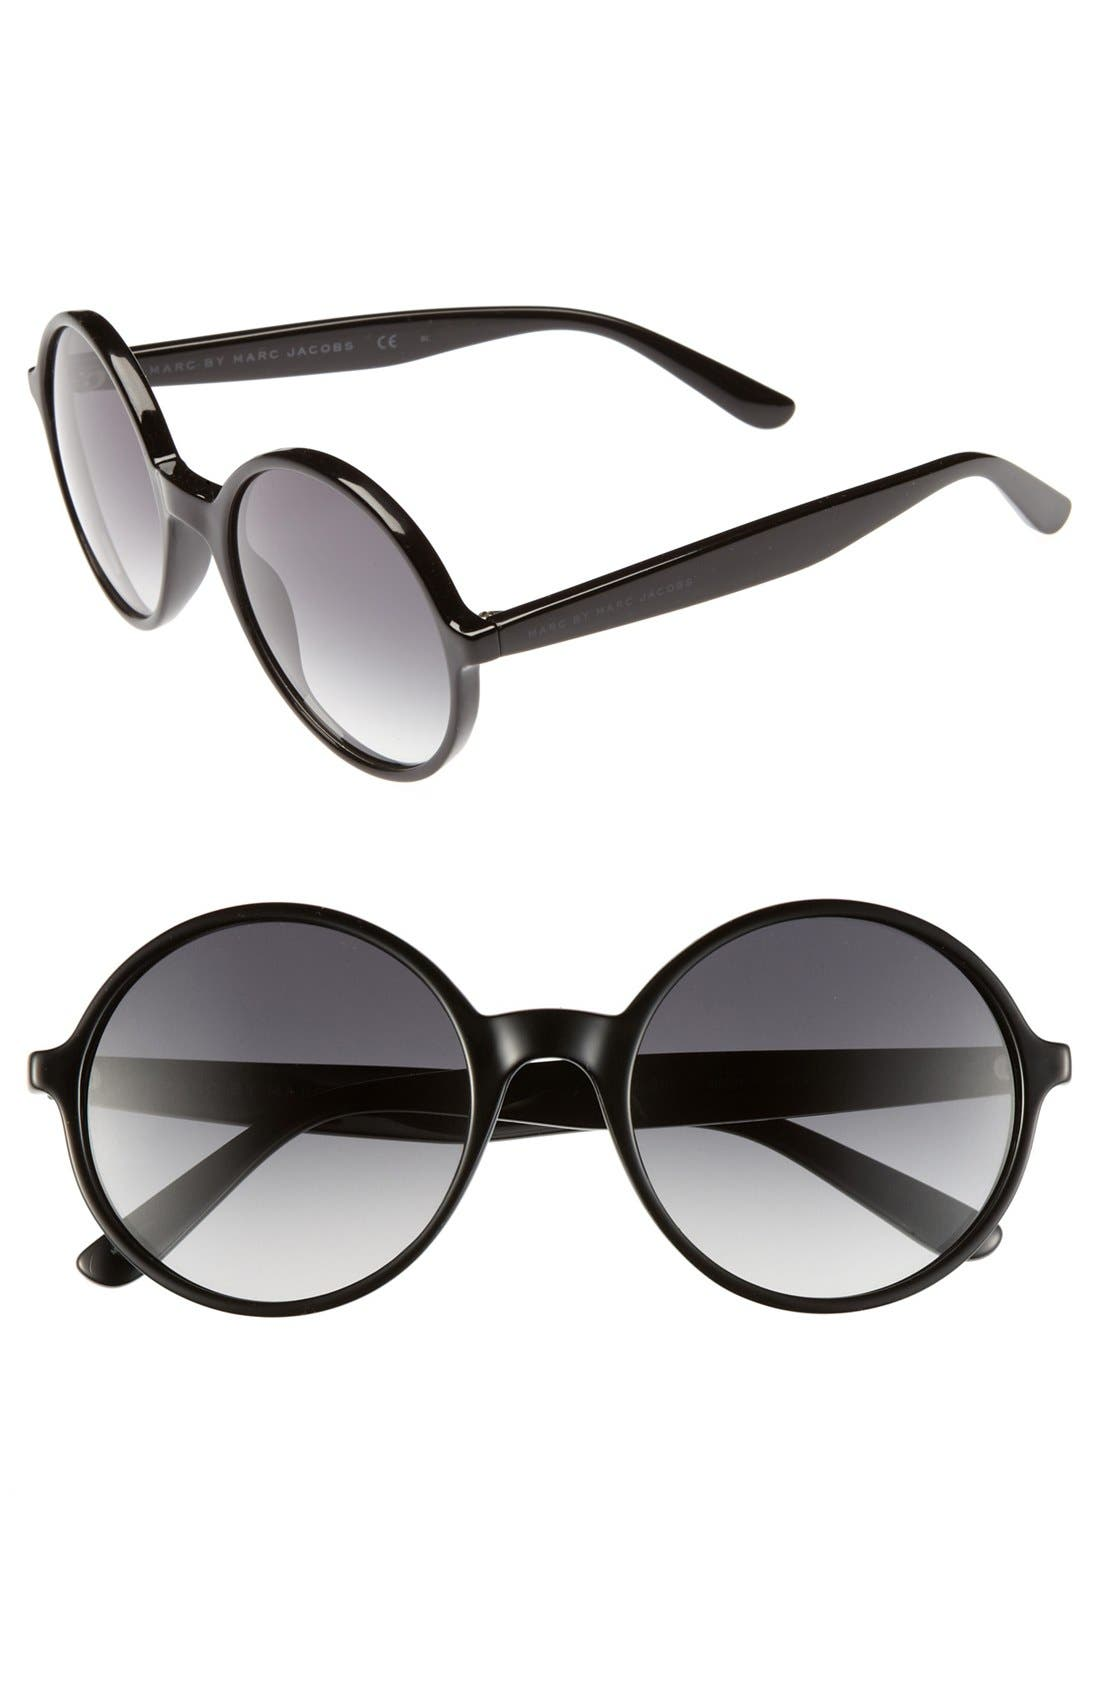 Main Image - MARC BY MARC JACOBS 54mm Retro Sunglasses